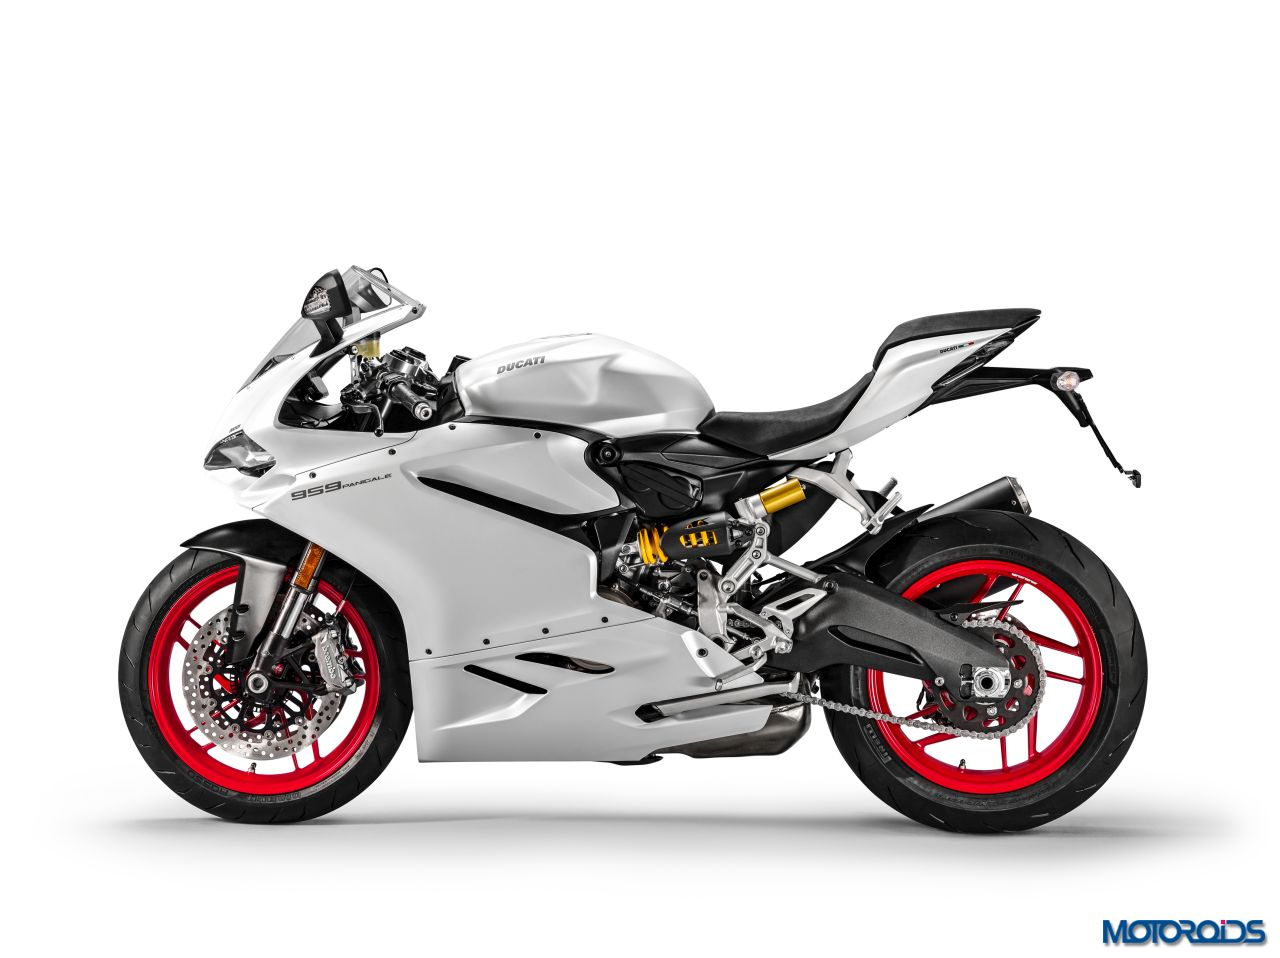 new ducati supersport s revealed through leaked image from 2016